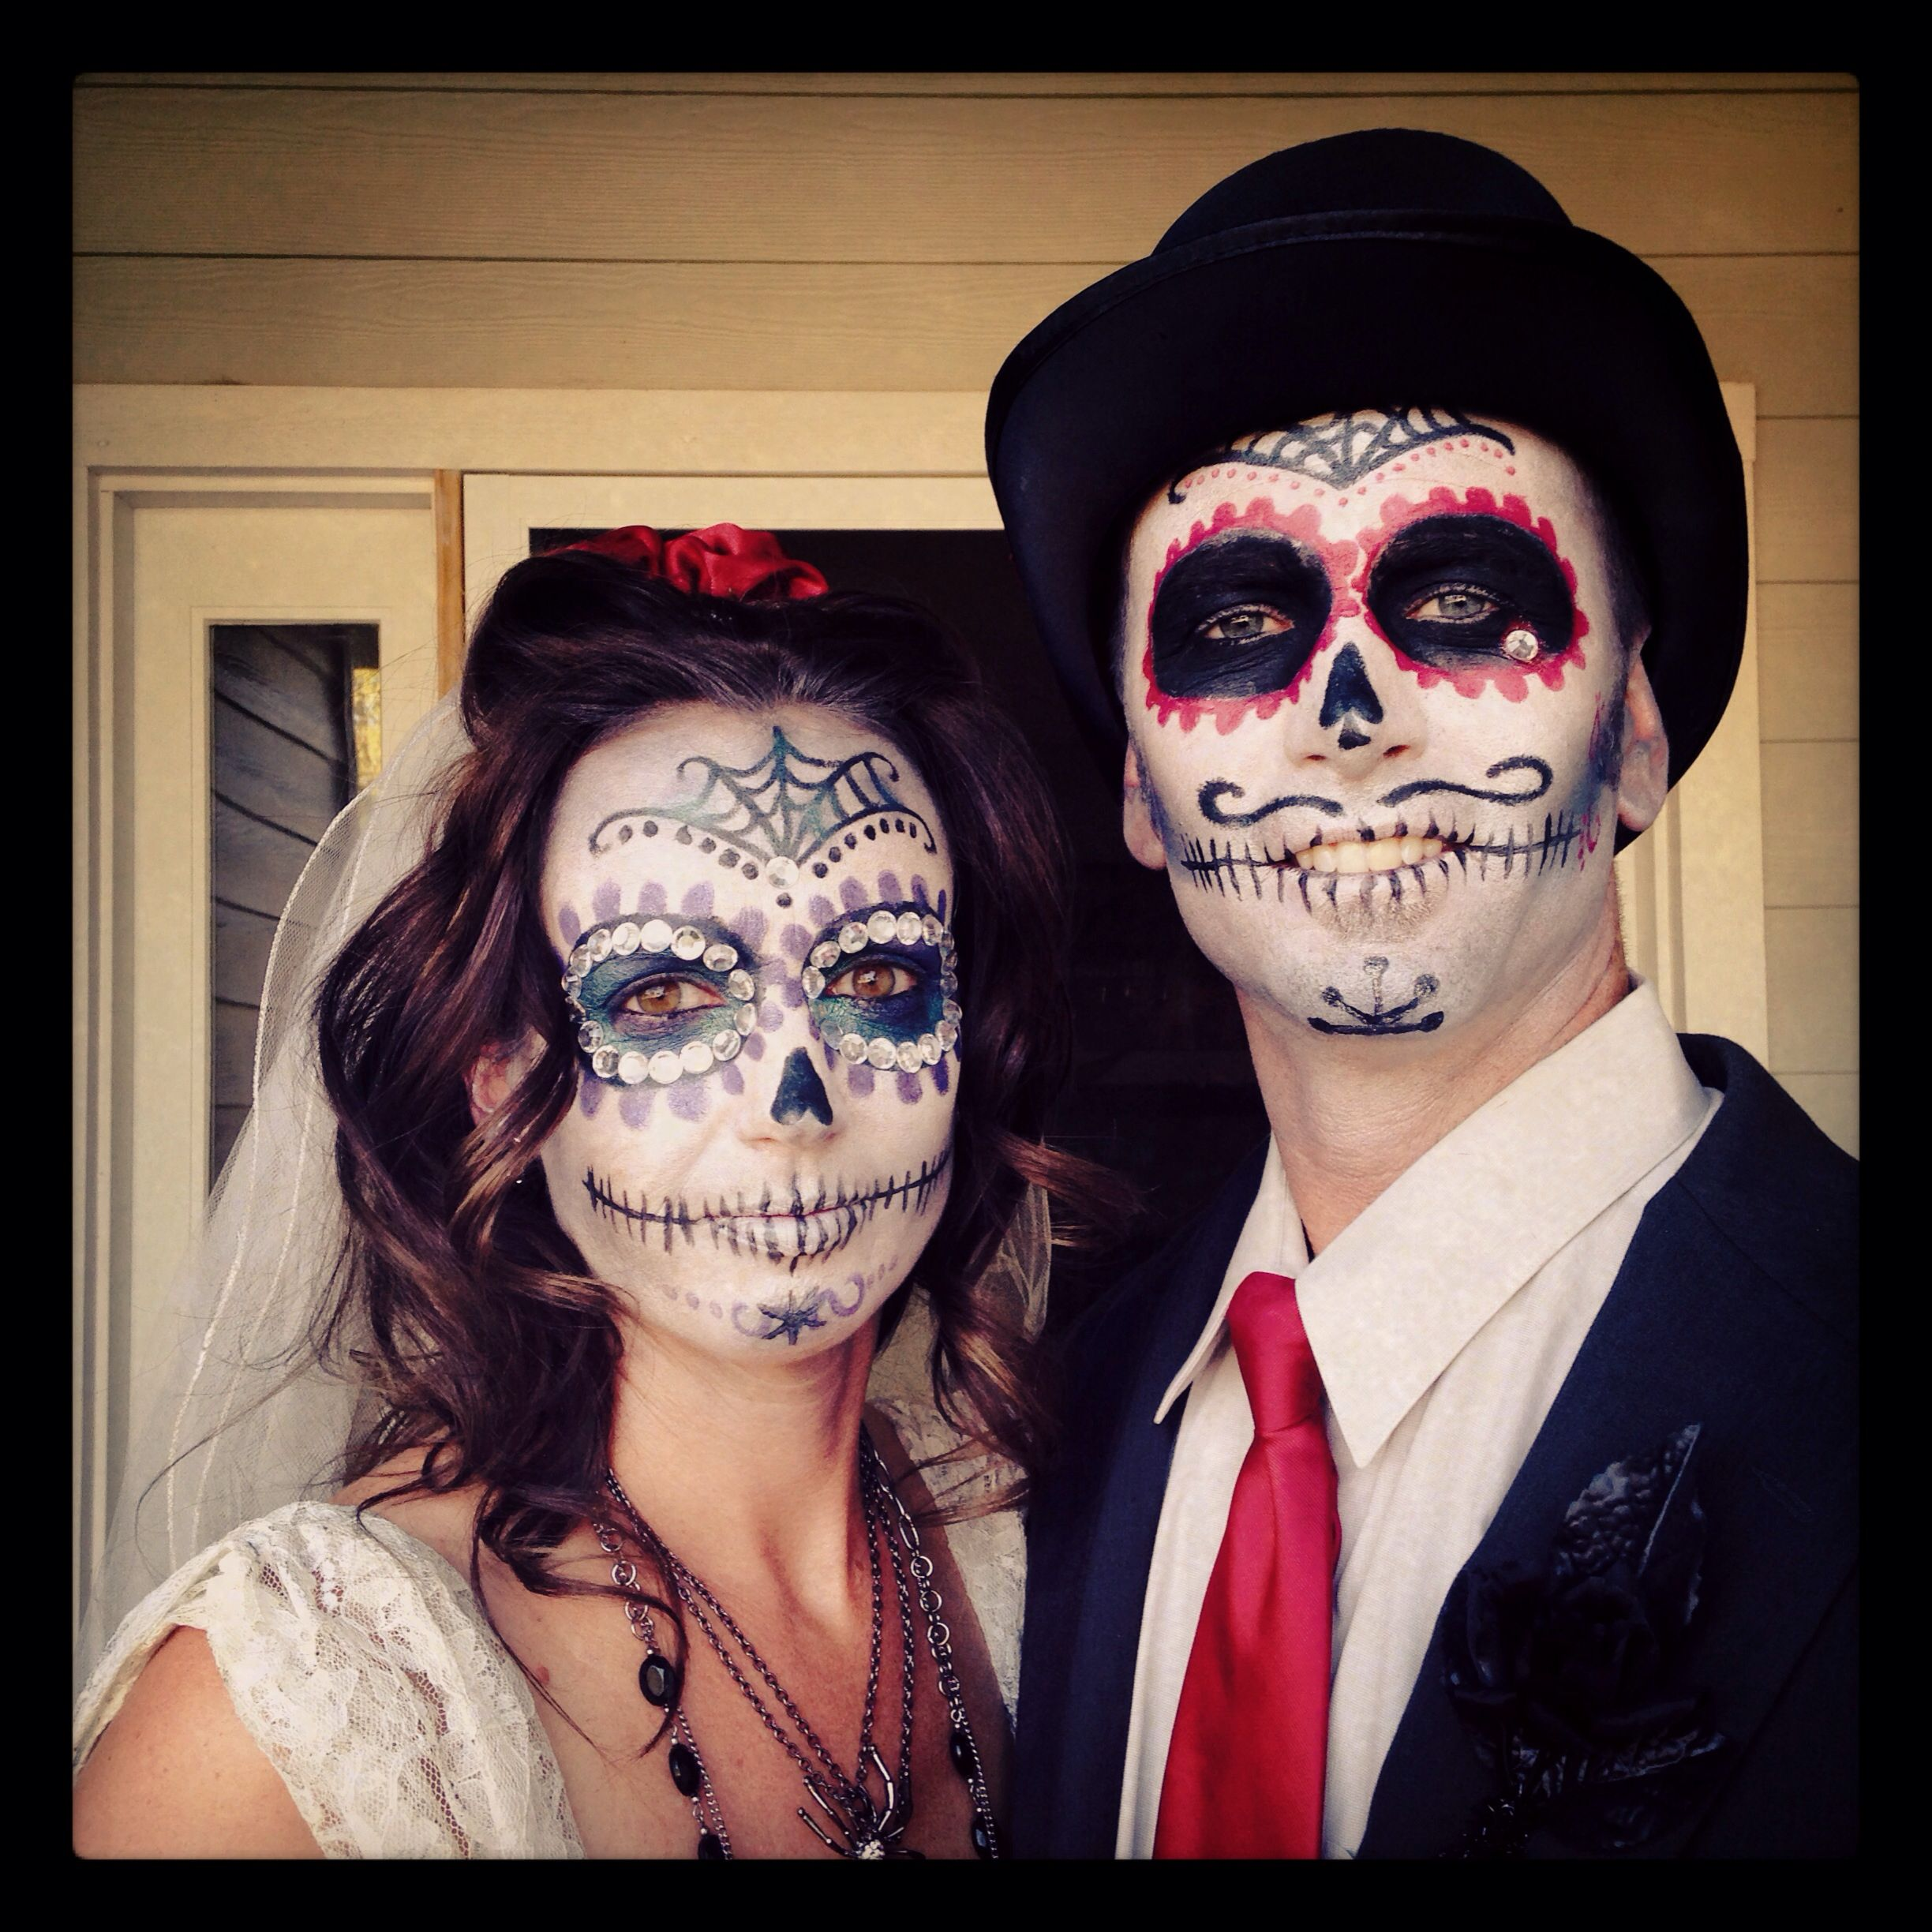 Day of the Dead Bride and Groom Halloween Costume make